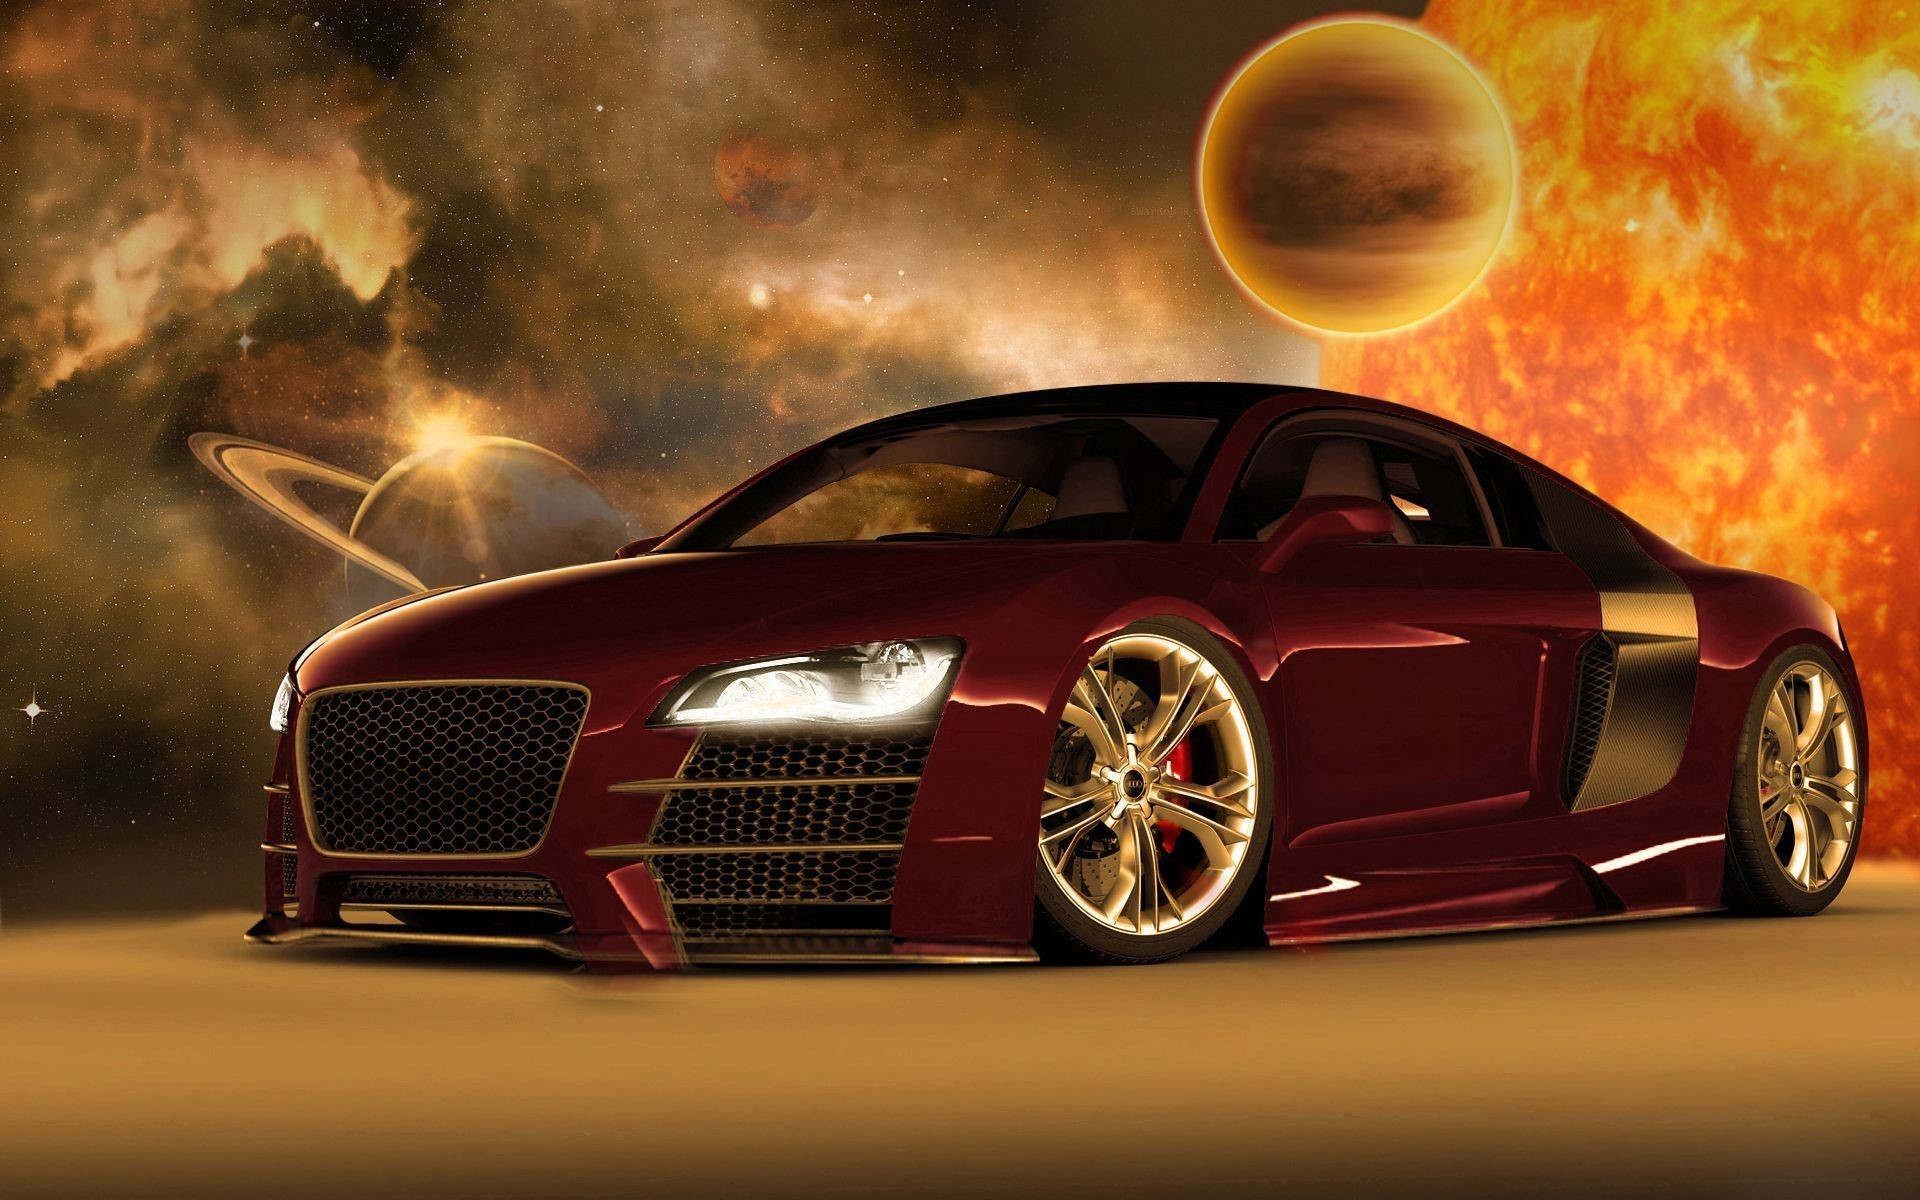 Awesome Cars Mobile HD Wallpaper